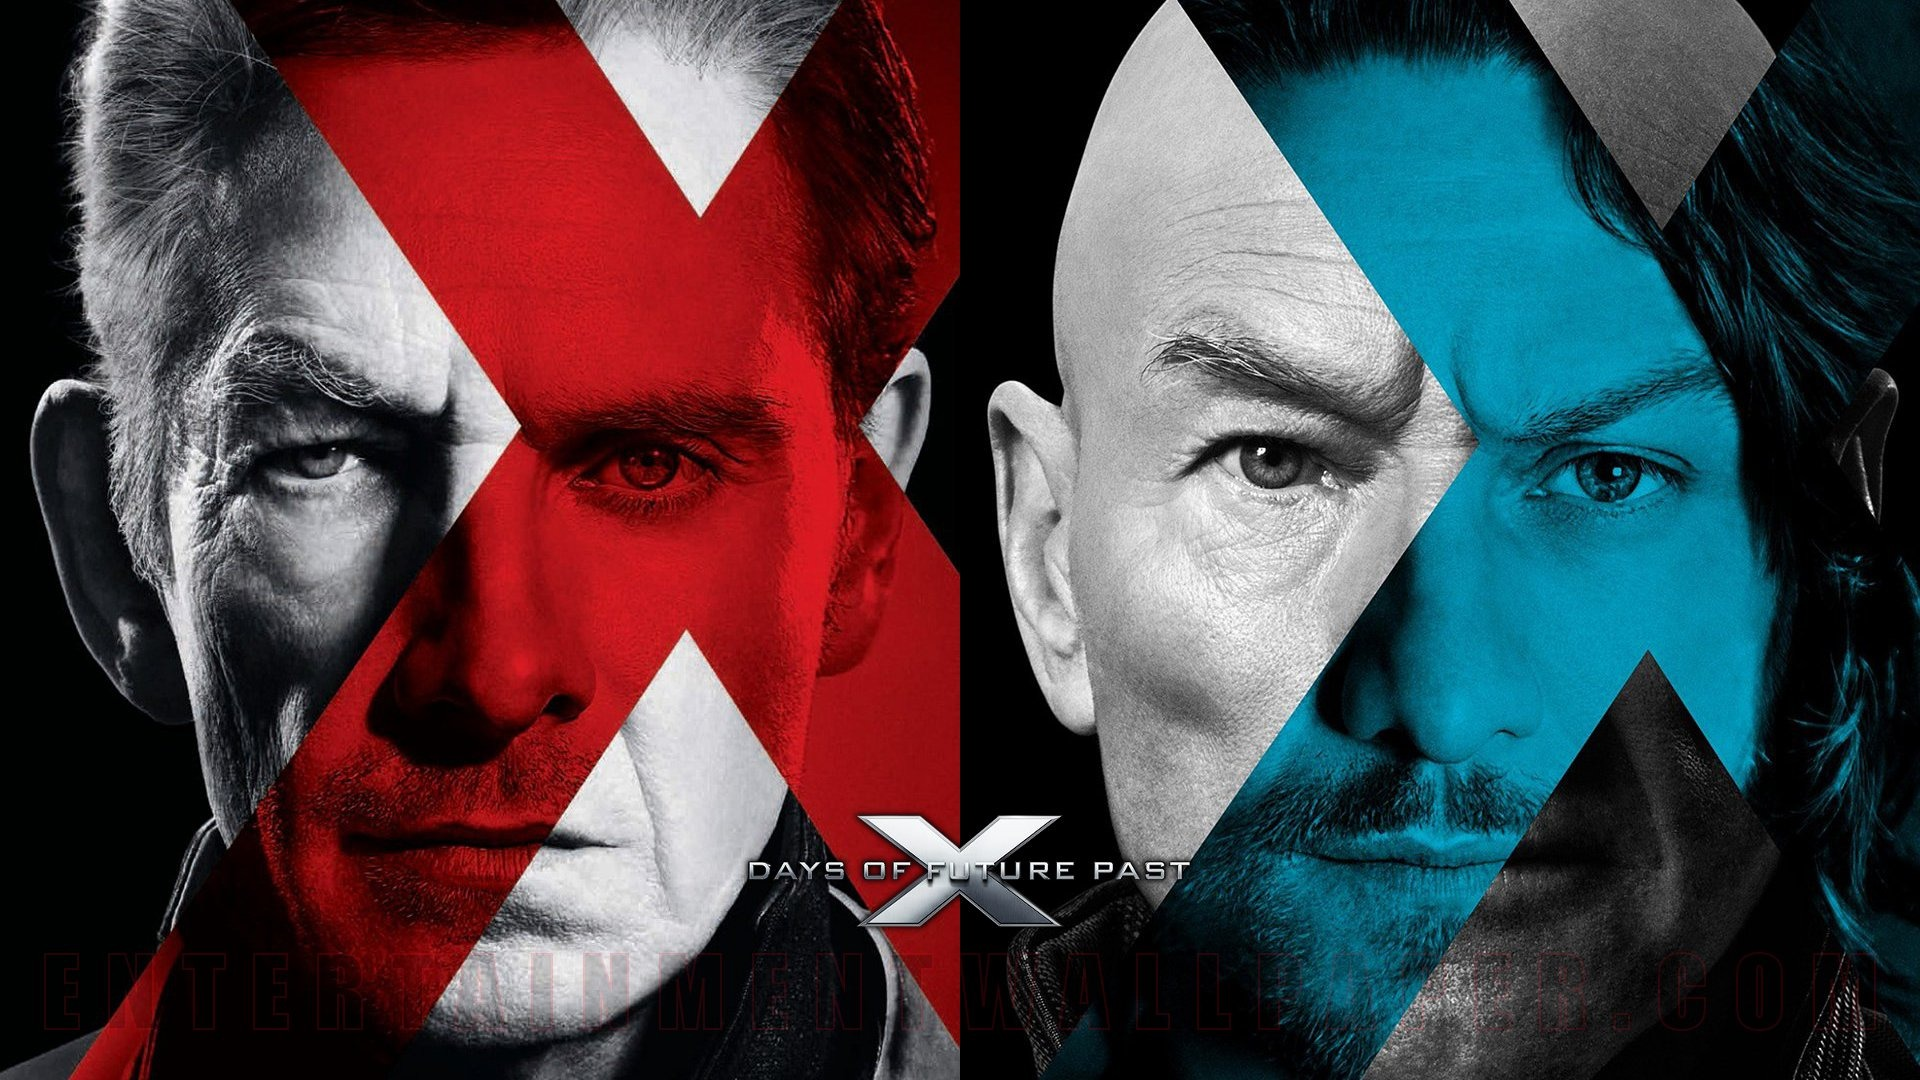 Film • X-Men: Days of Future Past